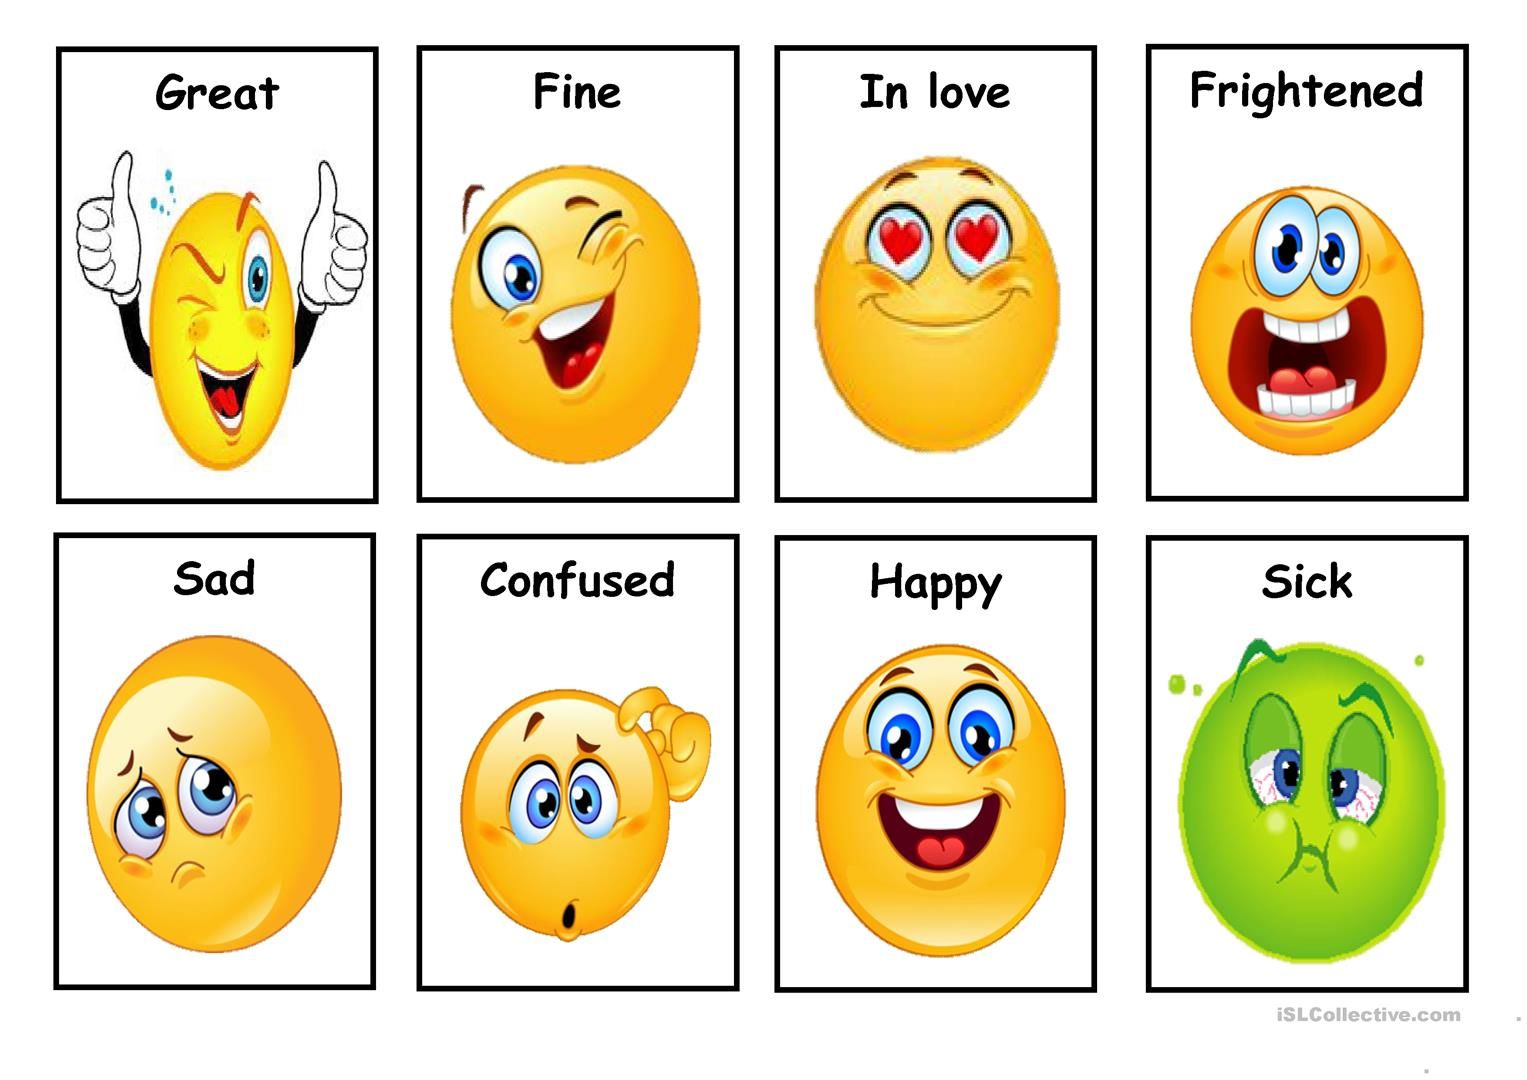 image about Feelings Cards Printable titled Inner thoughts - Playing cards (fastened 1) - English ESL Worksheets